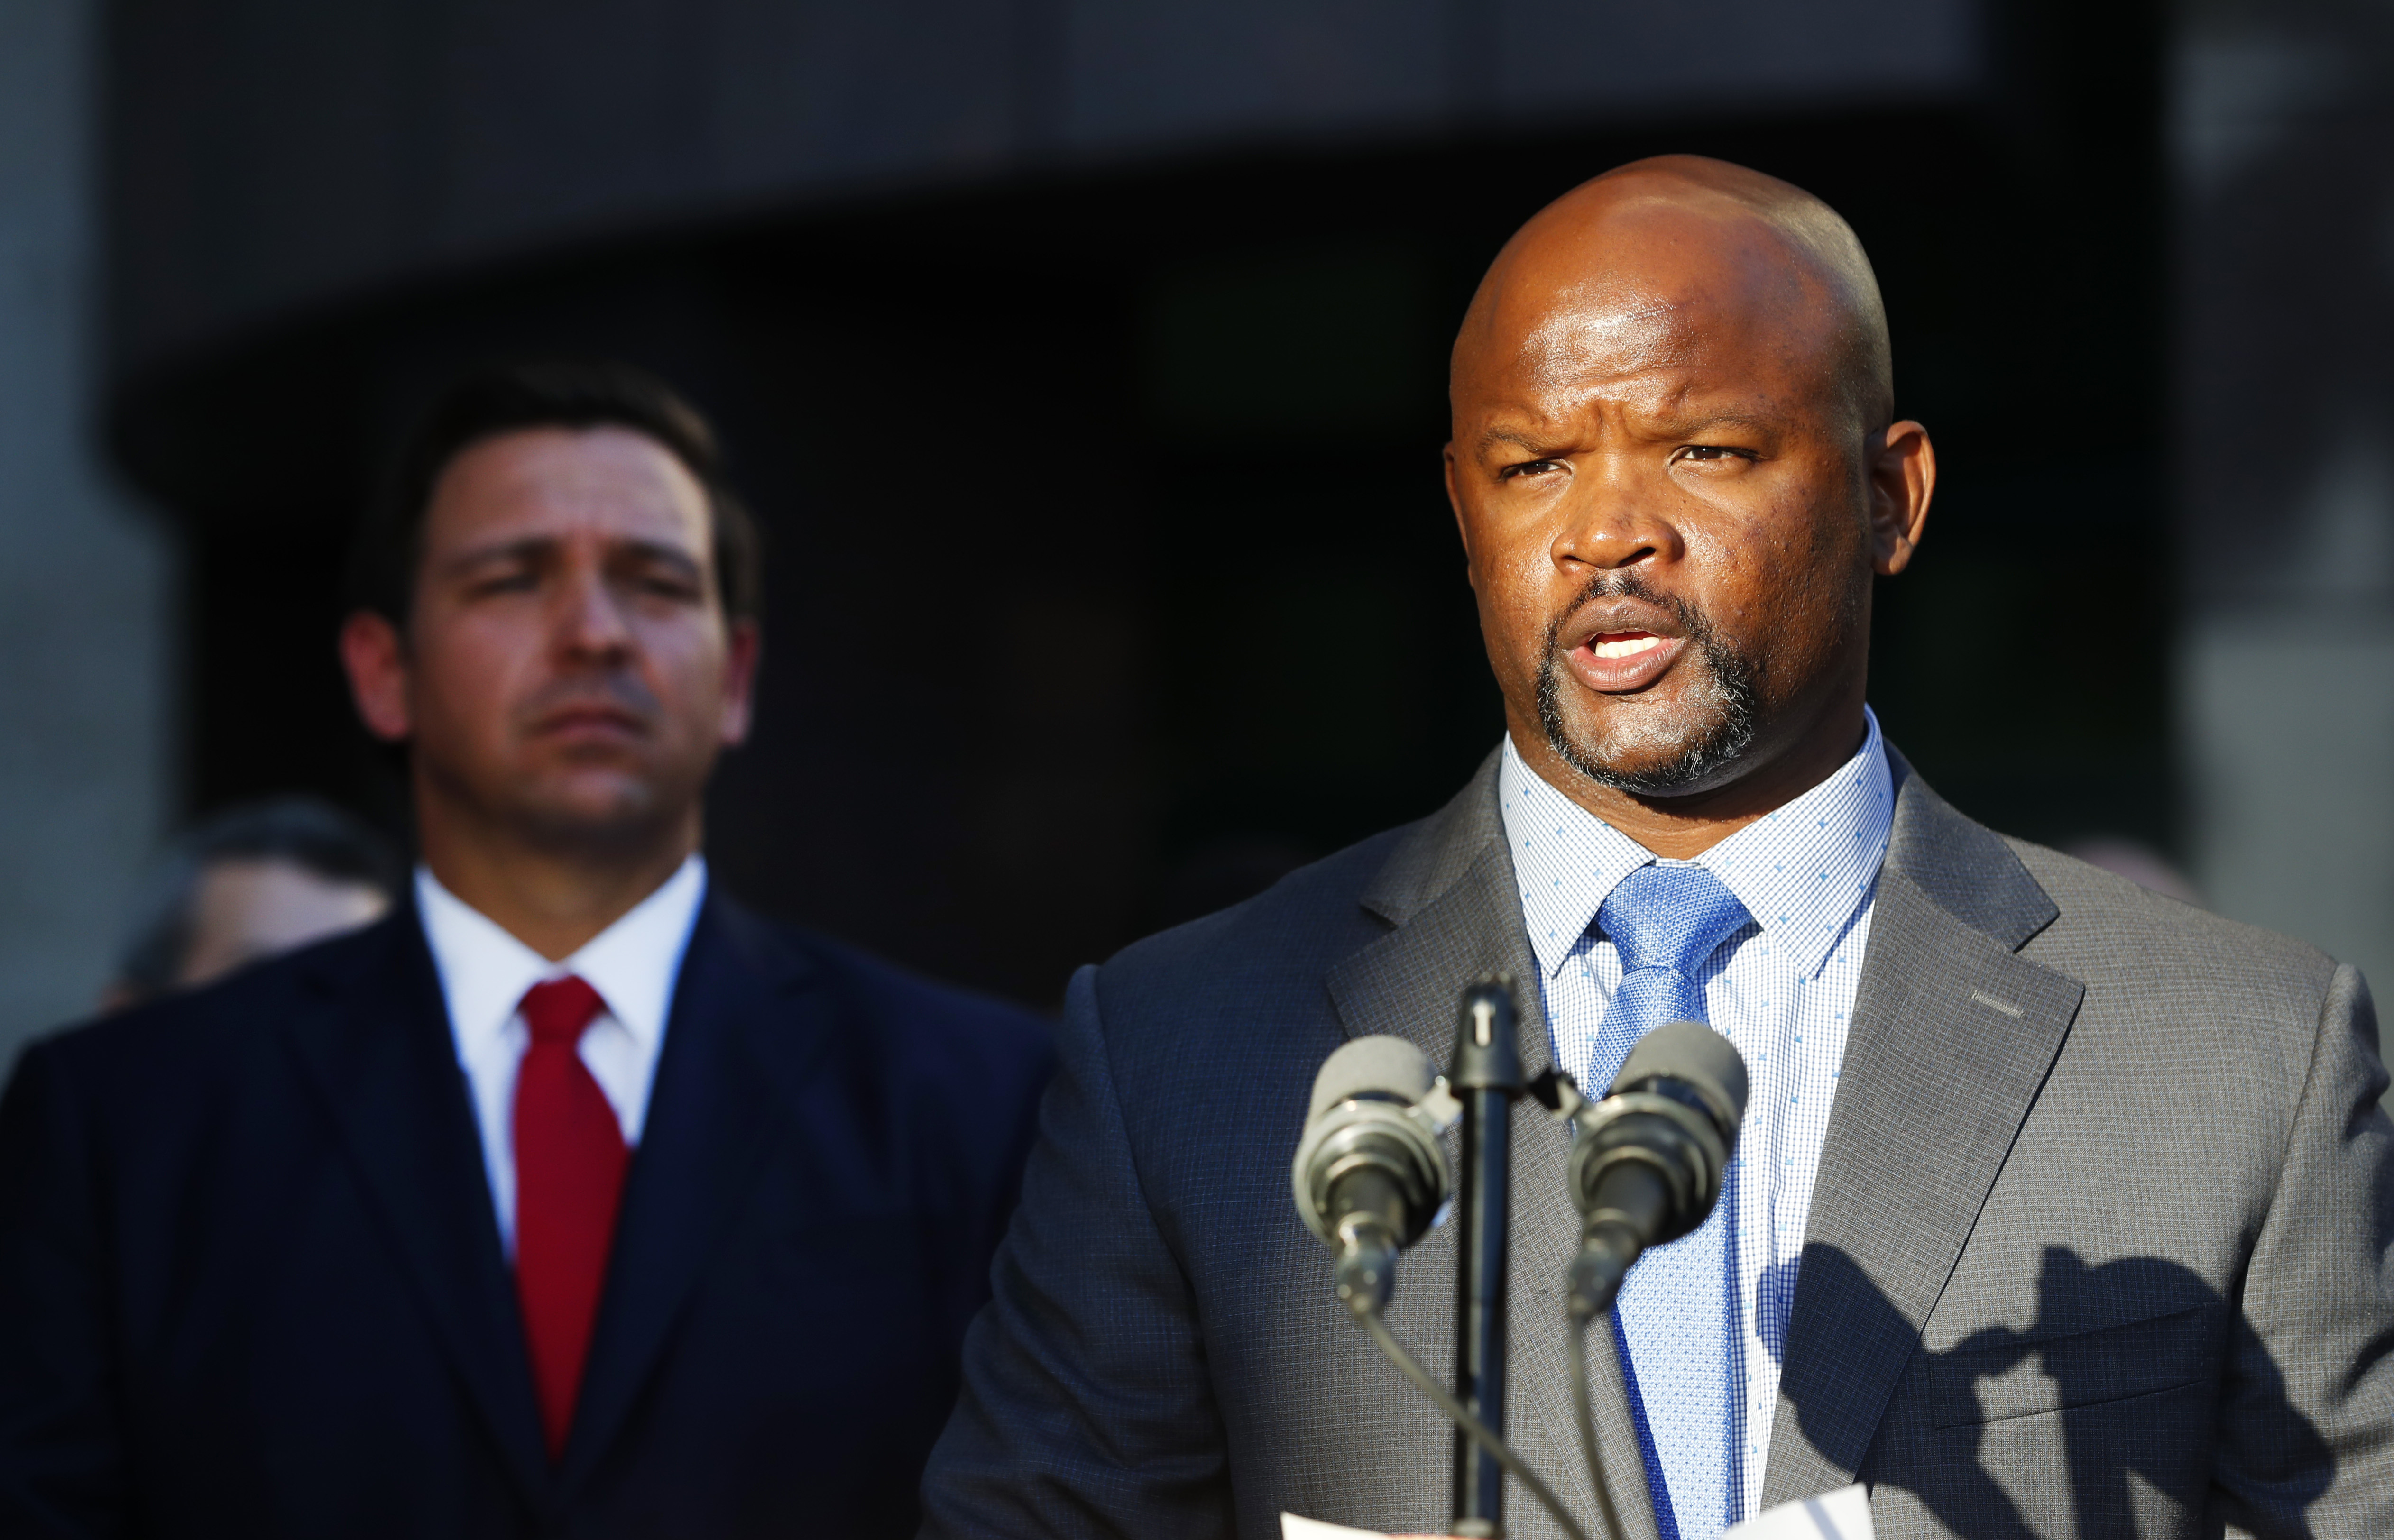 Acting sheriff Gregory Tony, right, speaks after being introduced by Florida Gov. Ron DeSantis, left, at the Broward County Sheriff's Office Fort Lauderdale headquarters in Florida, Jan. 11, 2019.